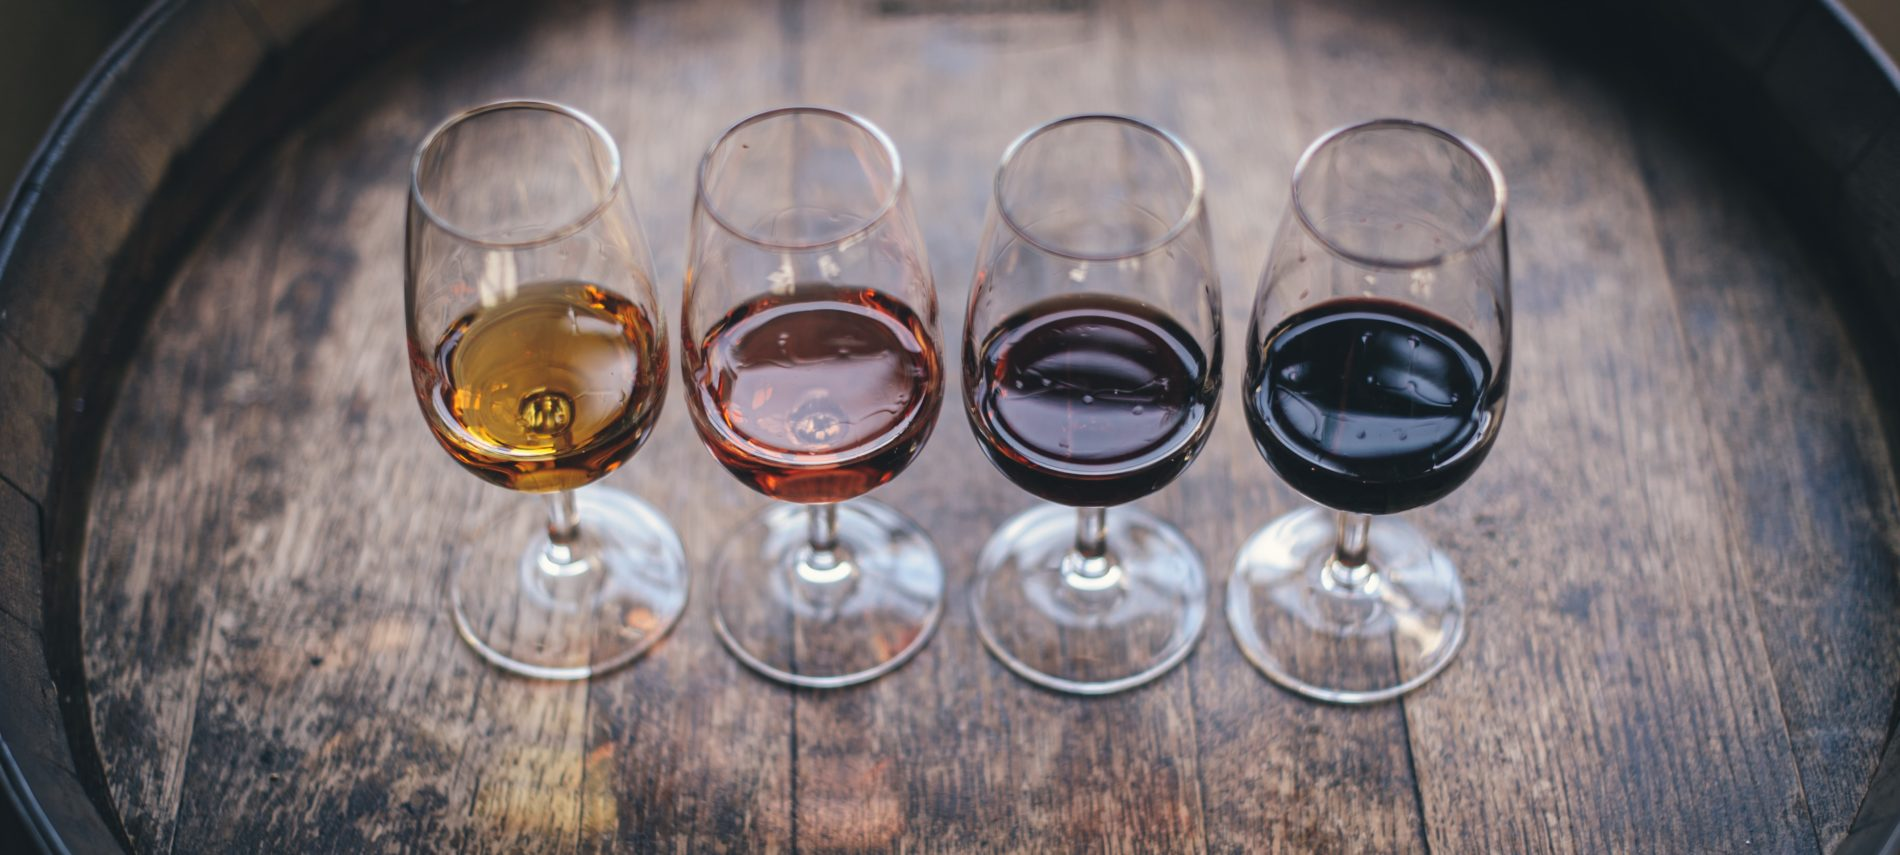 Four wine glasses on an oak barrel with a variety of wine